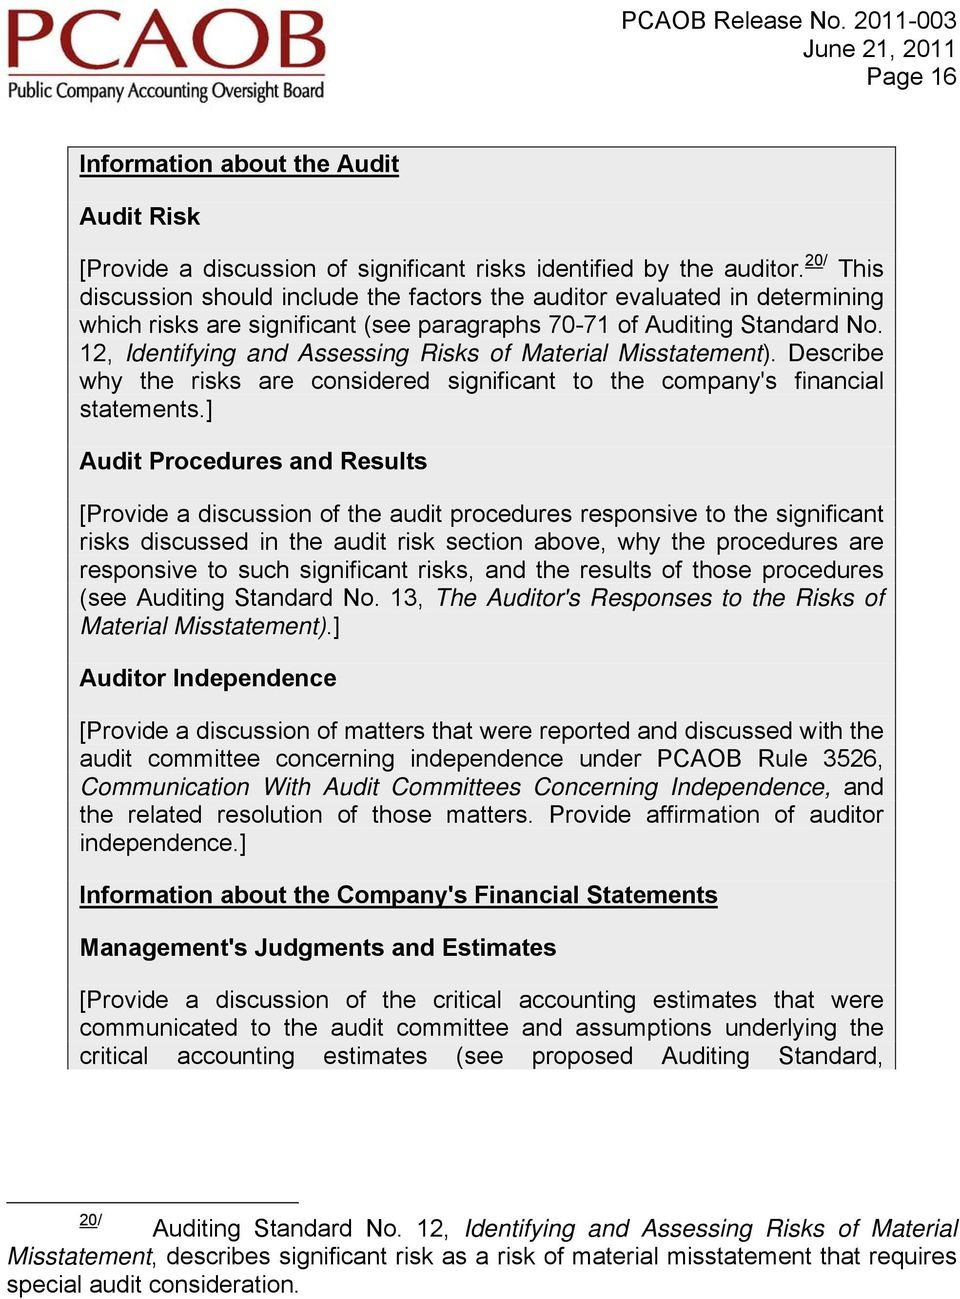 12, Identifying and Assessing Risks of Material Misstatement). Describe why the risks are considered significant to the company's financial statements.